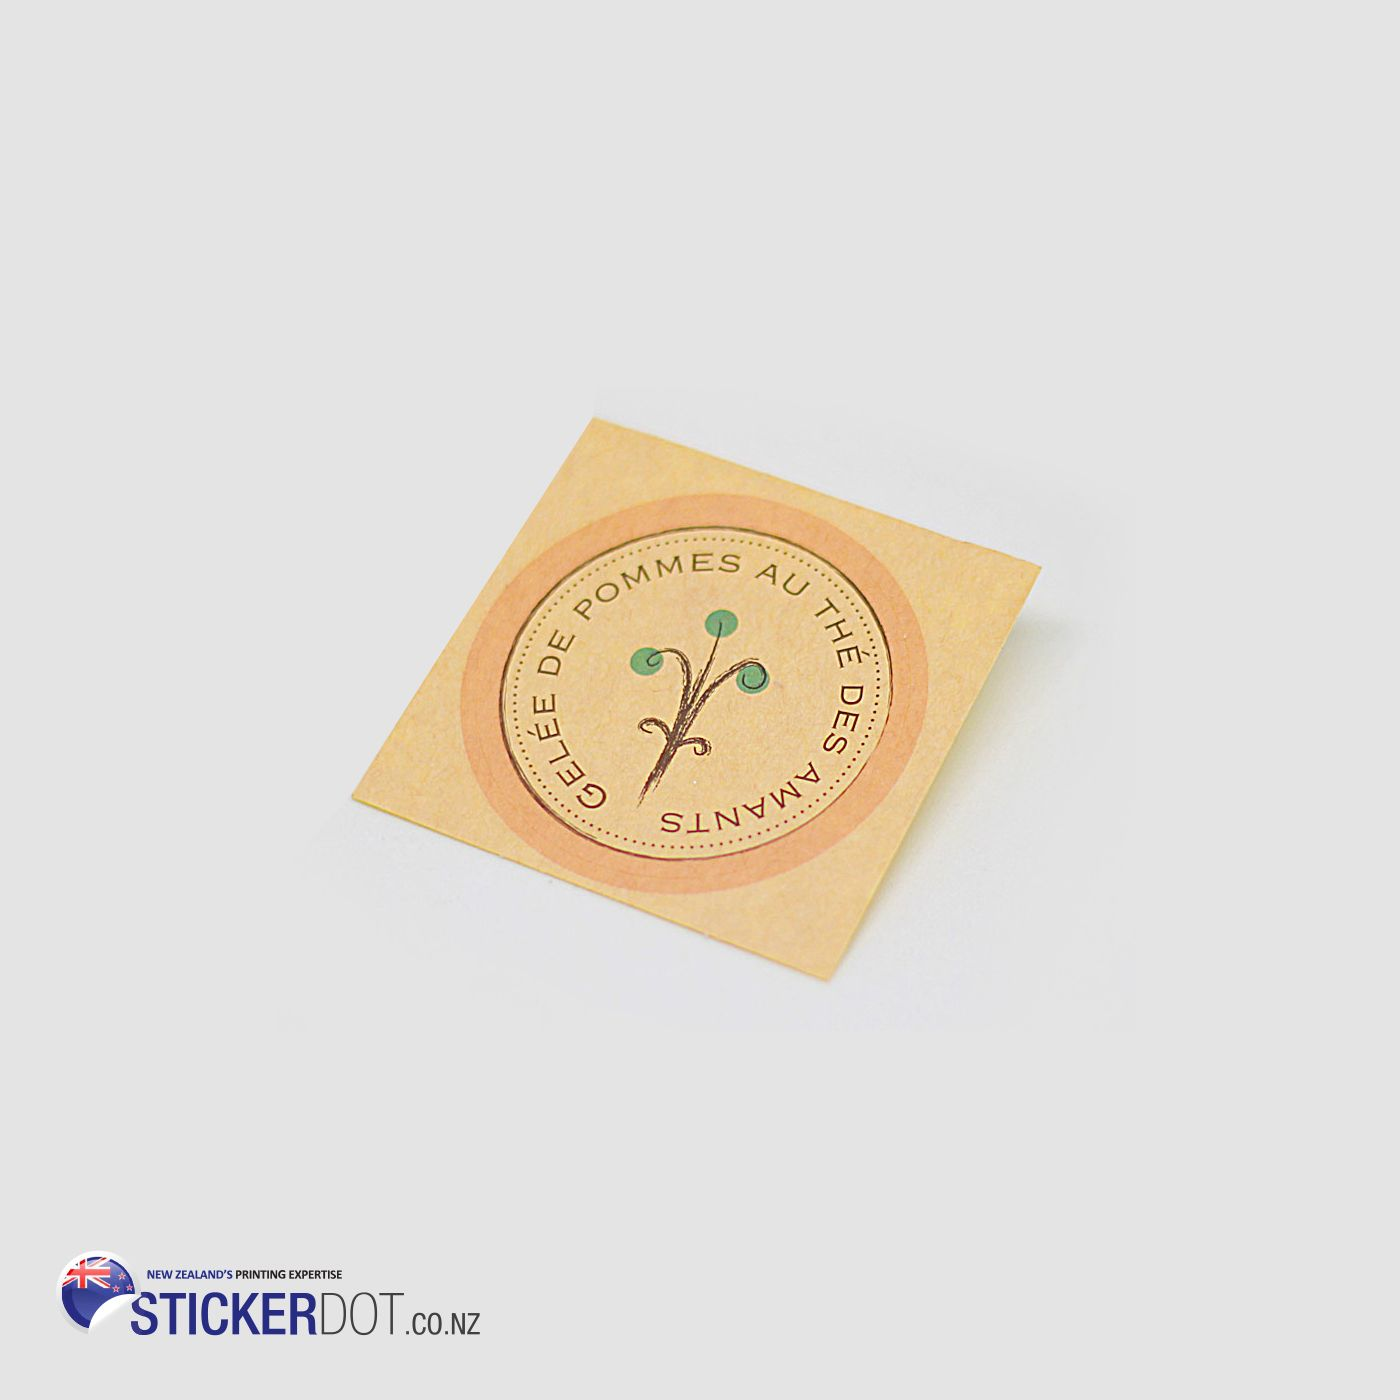 Cheap kraft paper stickers available at stickerdot guaranteed for high quality print